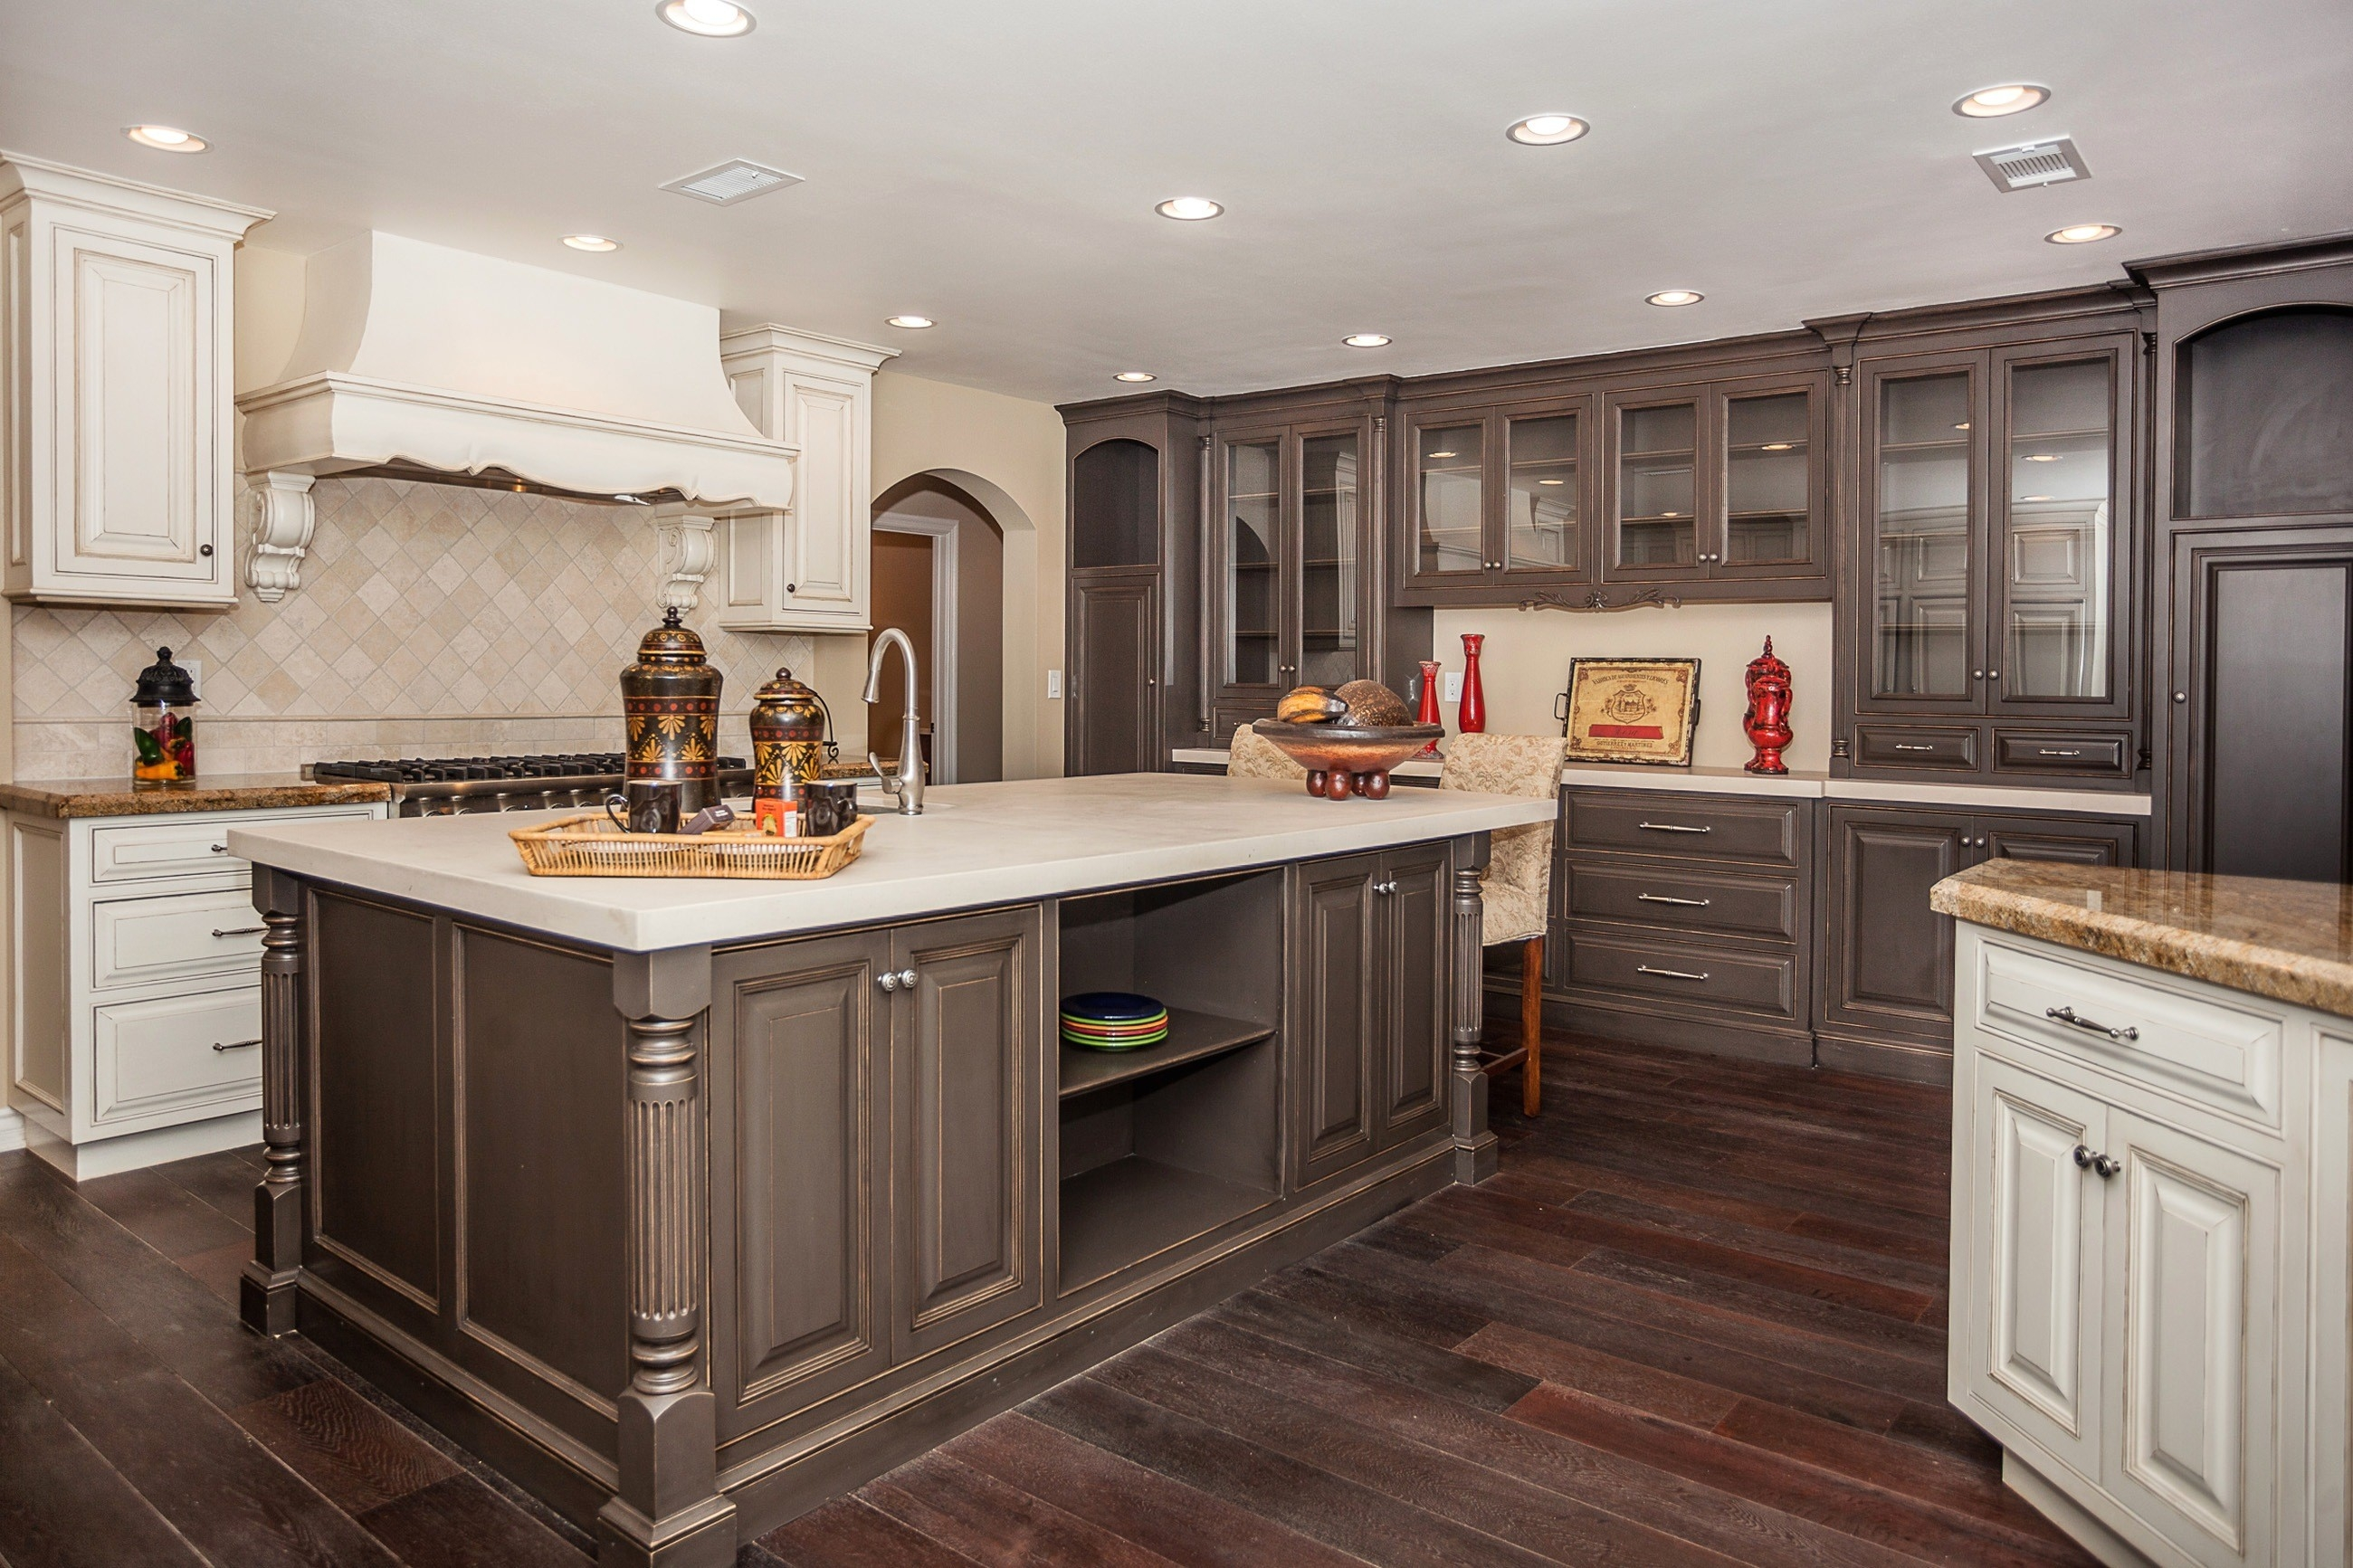 Permalink to Gothic Style Kitchen Cabinets